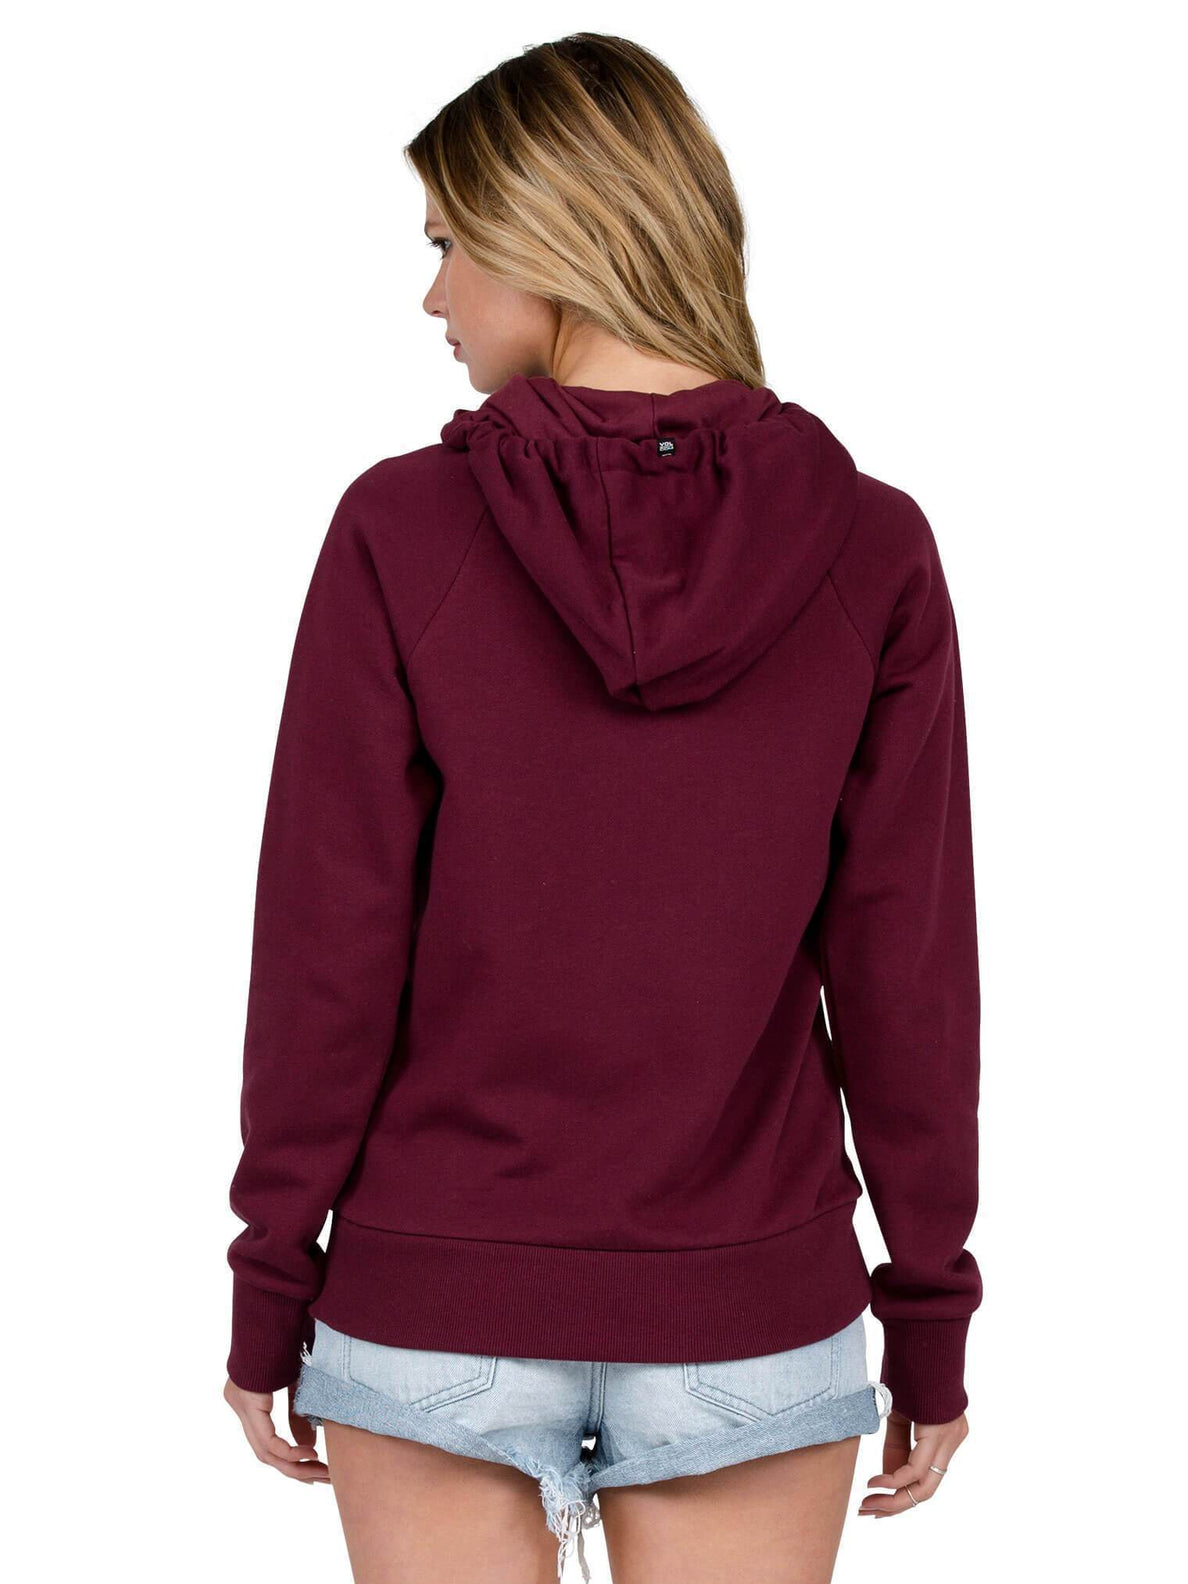 Commin Back Hoody - Merlot